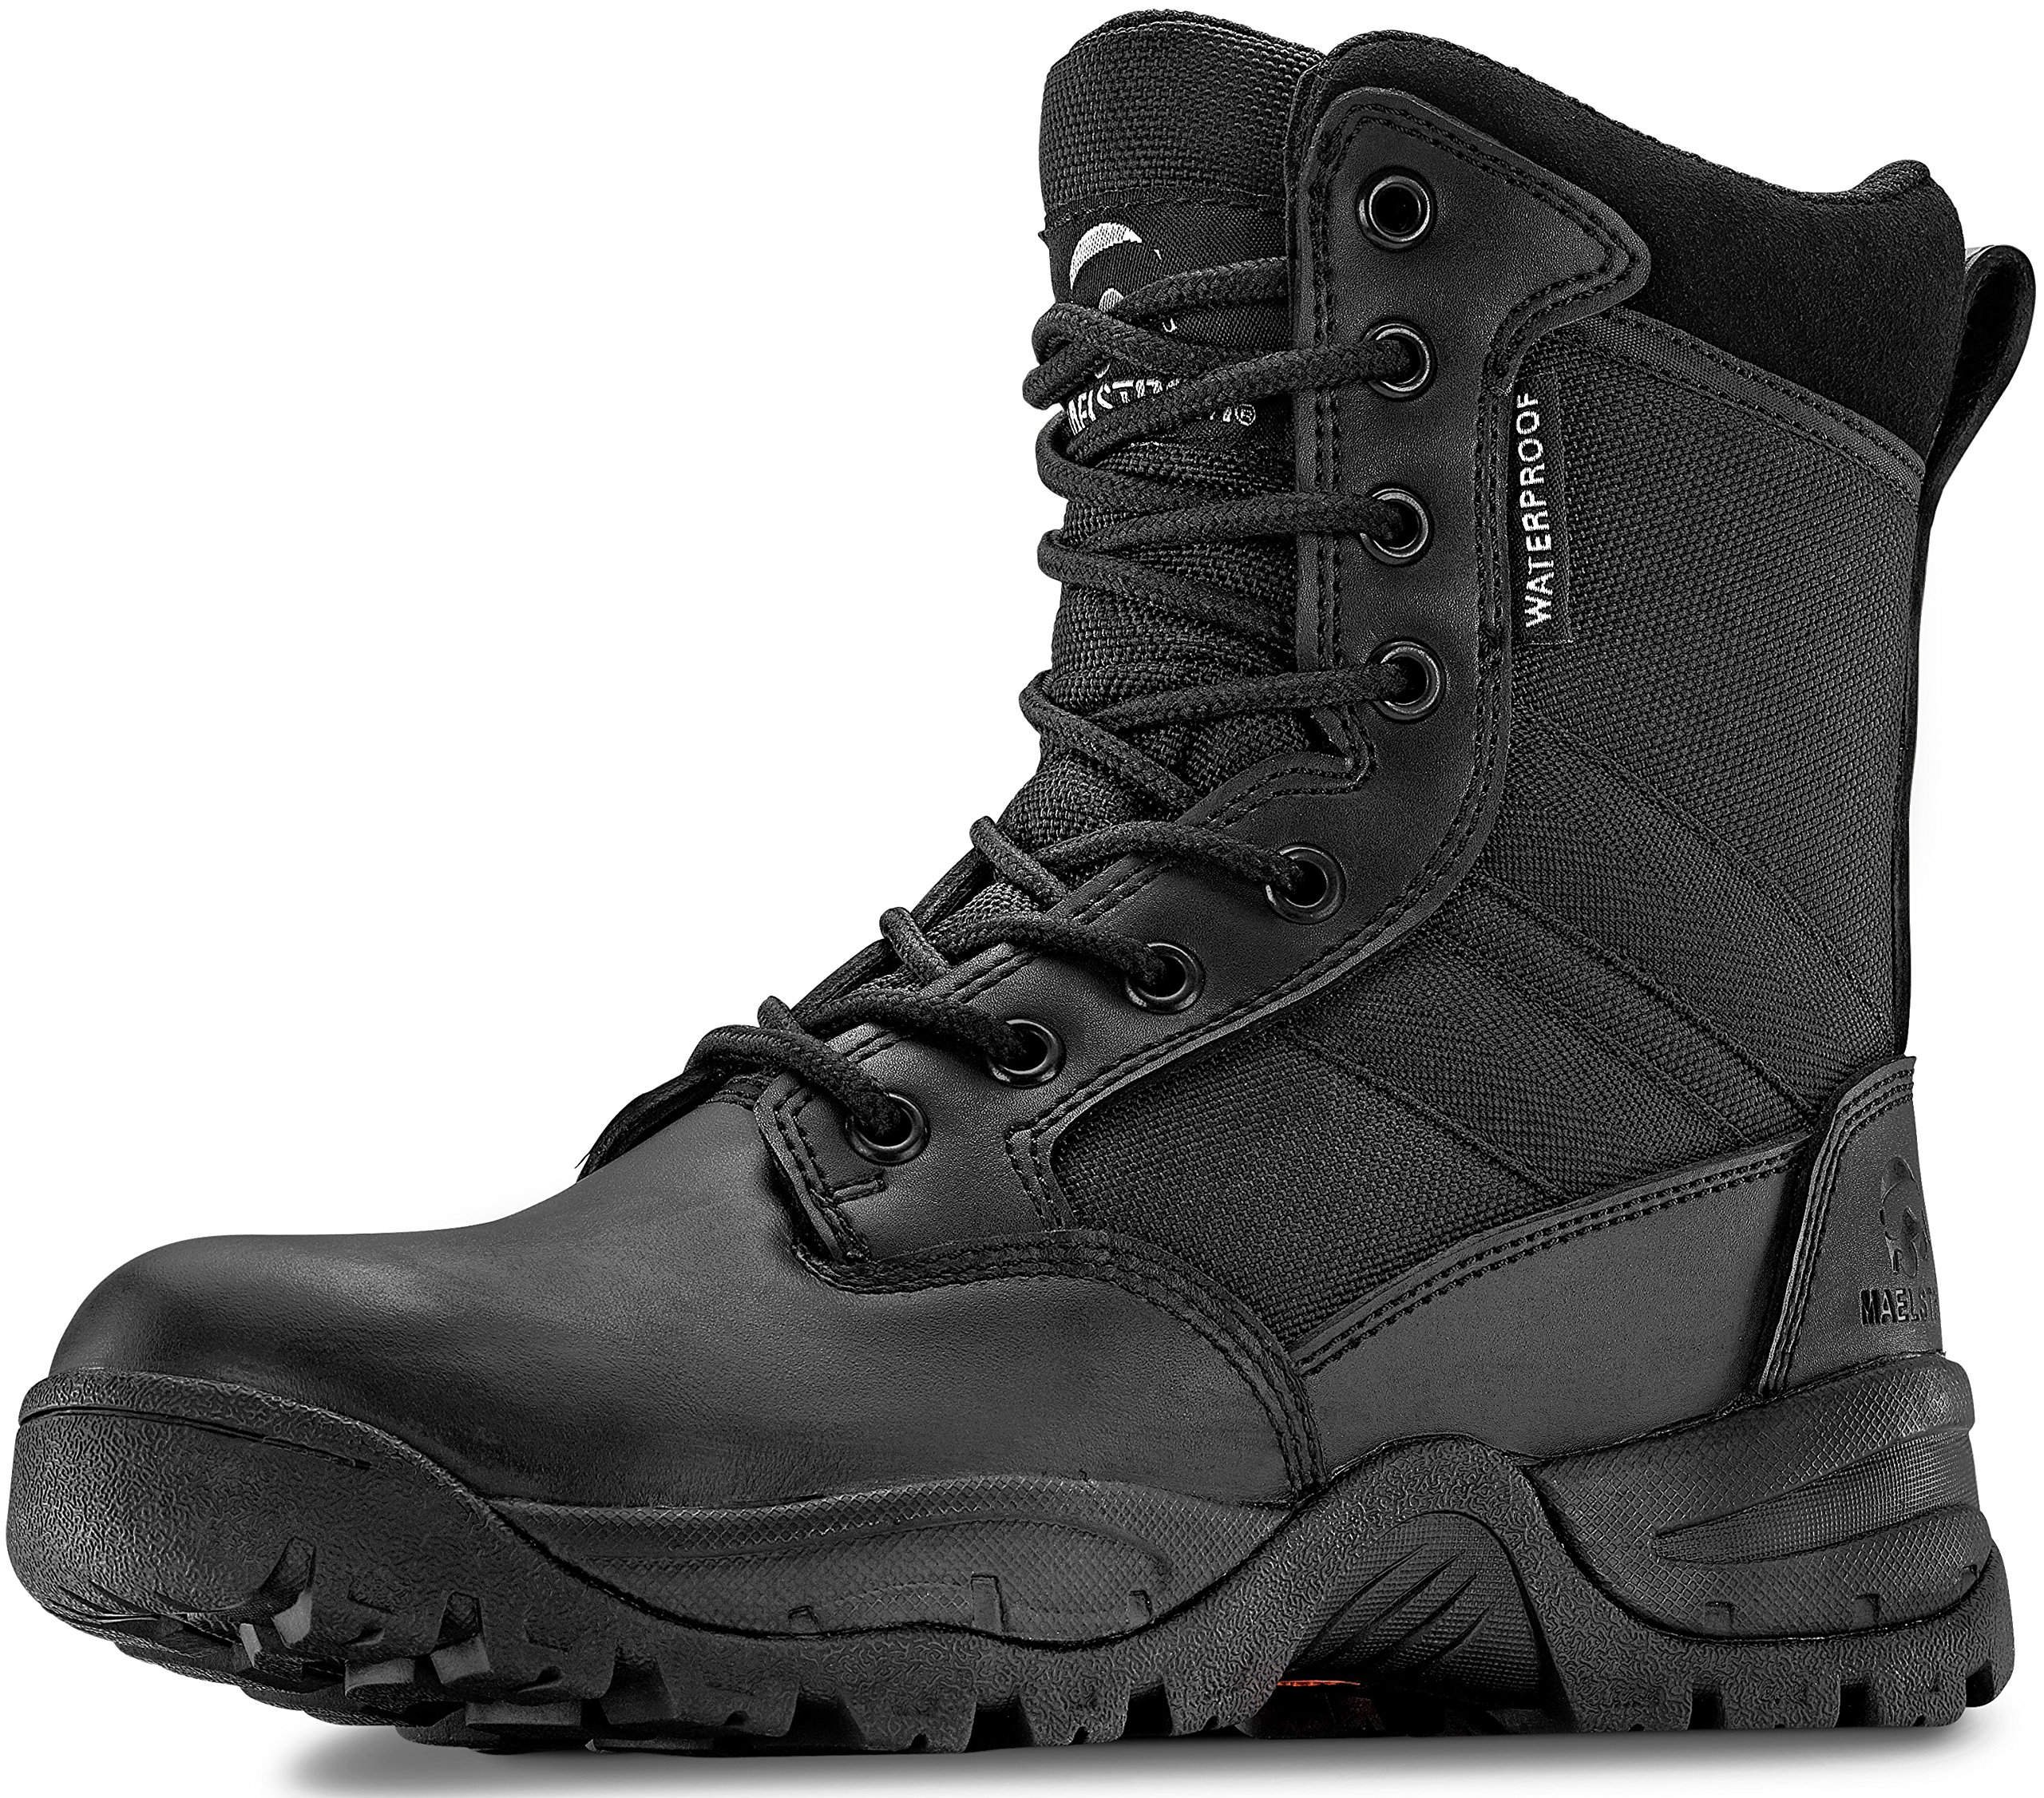 Maelstrom Tac Force 8'' Women's Black Waterproof Boots With Zipper – Military, Work & Tactical Boots – Athletic, Breathable, Durable, Comfortable & Lightweight Boots For Women, Size 8.5M by Maelstrom (Image #3)